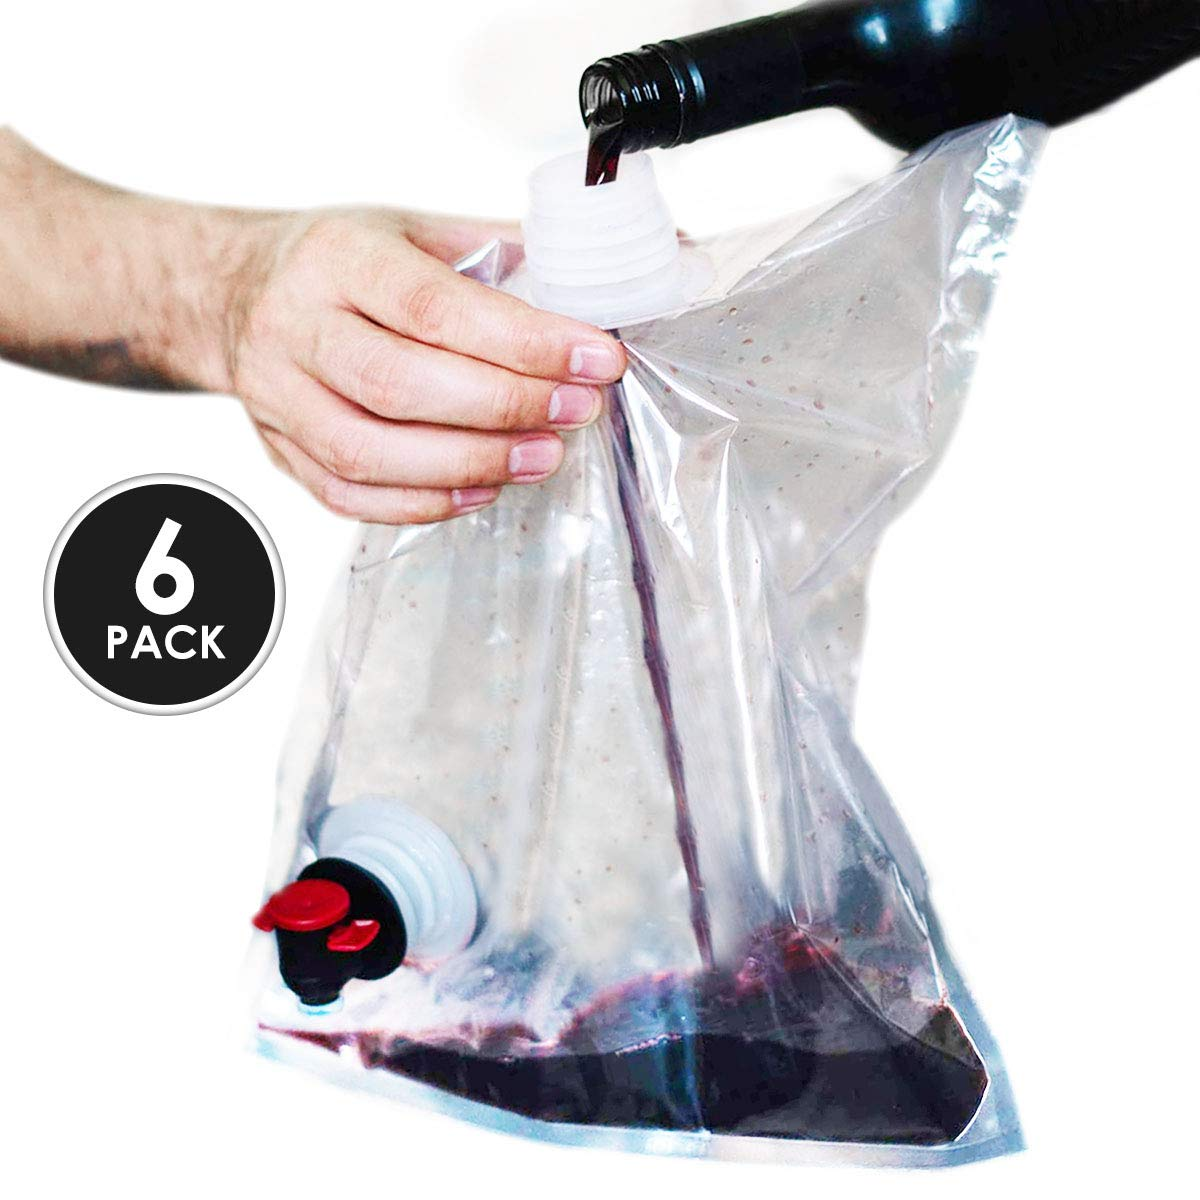 Wine Purse Replacement Bags - Innovative Easy to Fill Screw Top- Holds 4 Bottles of Wine- 3 Liter (100 oz) Disposable - Reusable Wine Pouch For Use in Wine Purse with Hidden Spout- (Pack of 6) by DU VINO